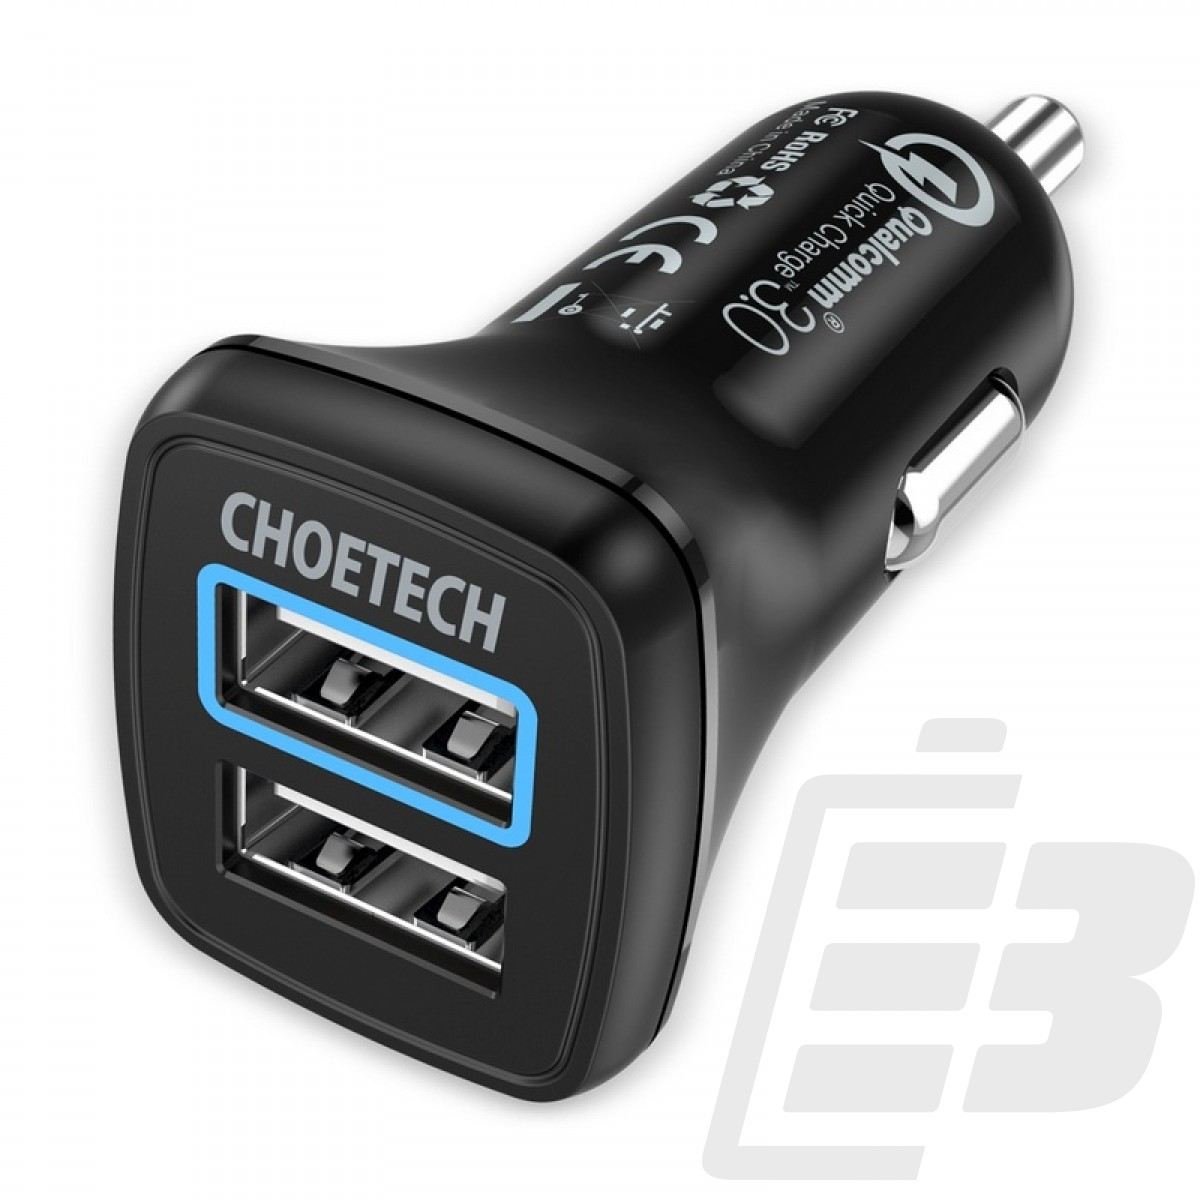 Choetech C0051 USB Car Charger with Quick Charge 3.0 1